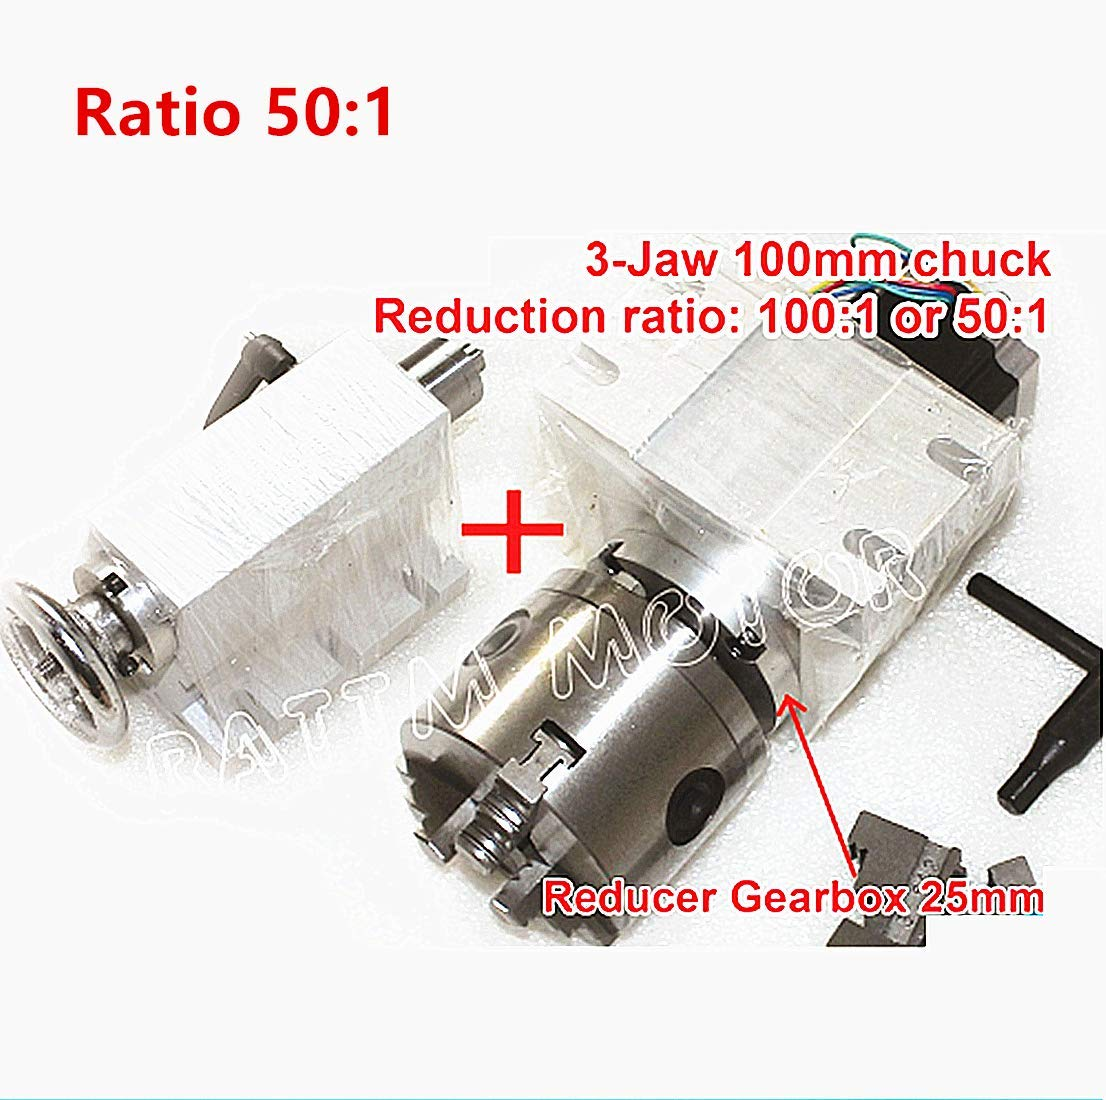 K11-100mm Rotary A Axis Rotational Fourth 4th Axis 3 Jaw Chuck Gapless harmonic reducer Gearbox dividing head Ratio 50:1 with 65mm Tailstock for CNC Router Engraving Milling Machine Changzhou Rattm Motor Co Ltd